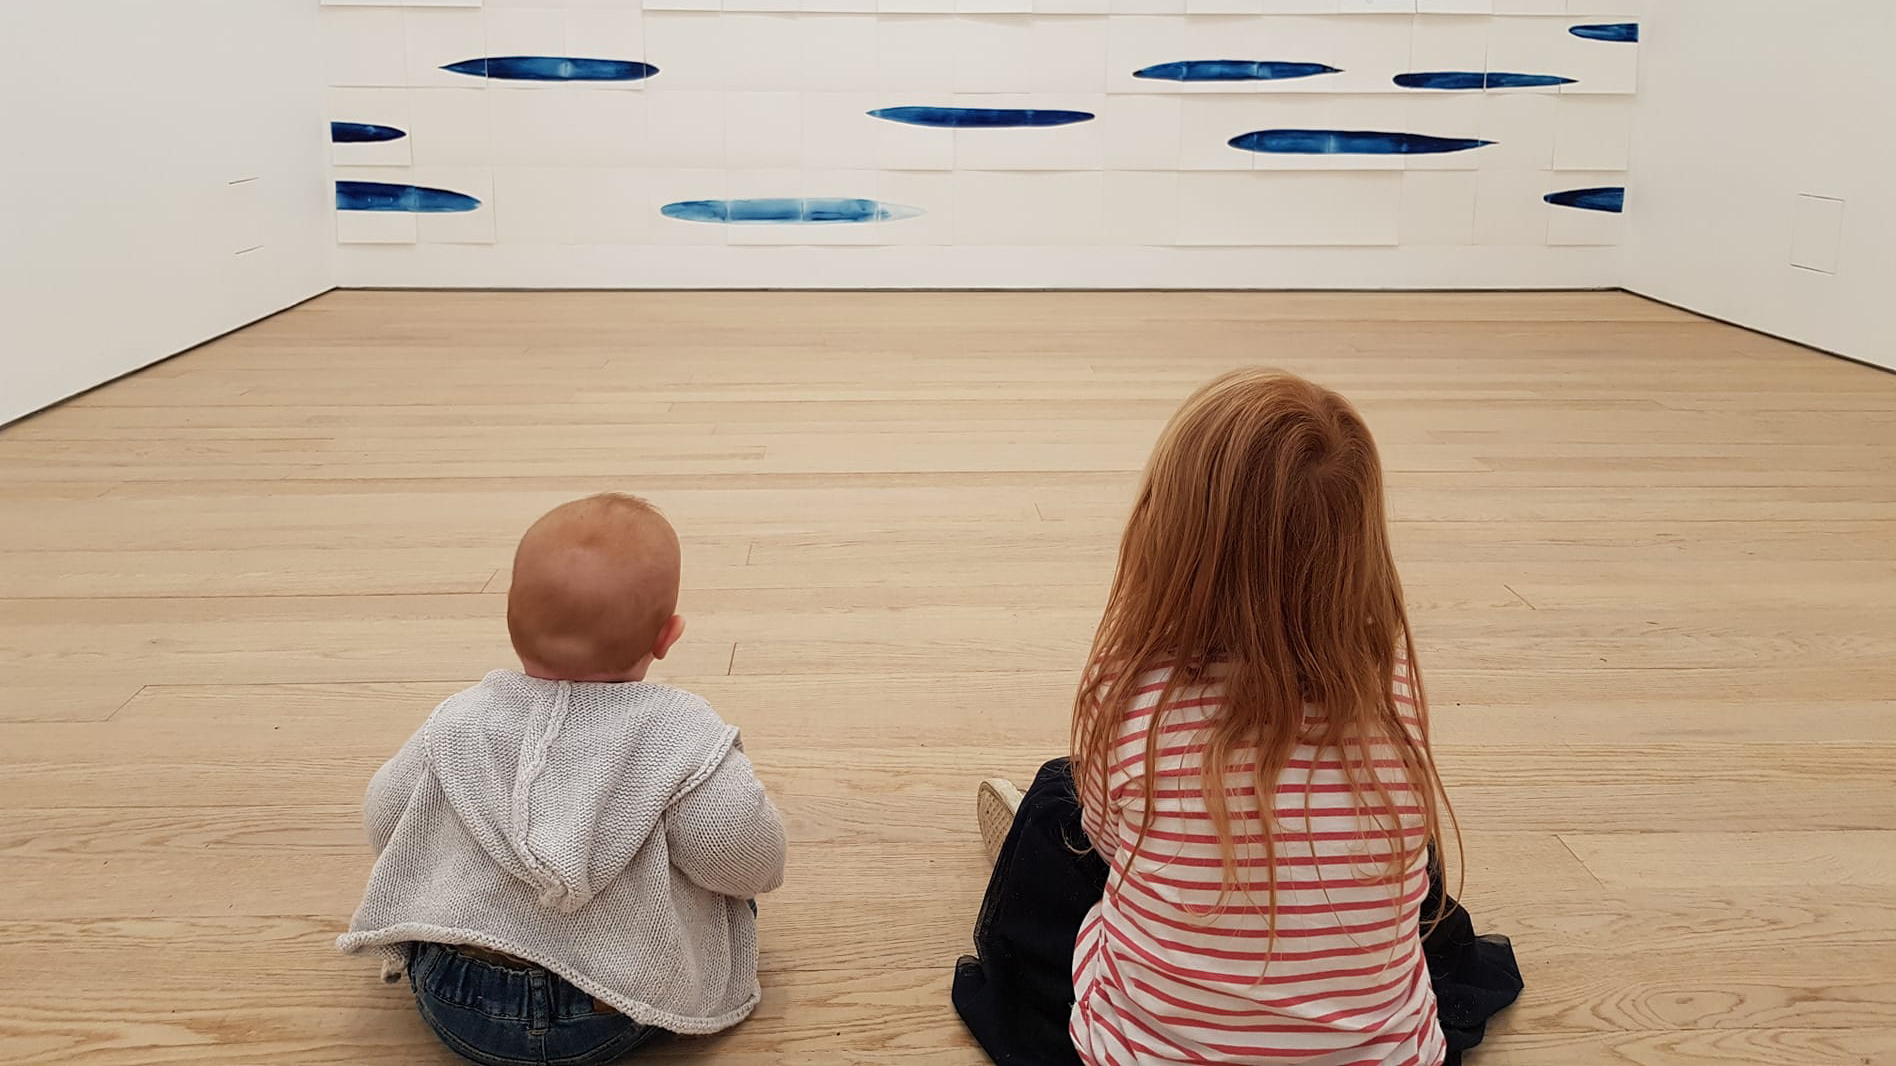 photo of two young girls sat on the floor of the gallery looking at artwork on the wall